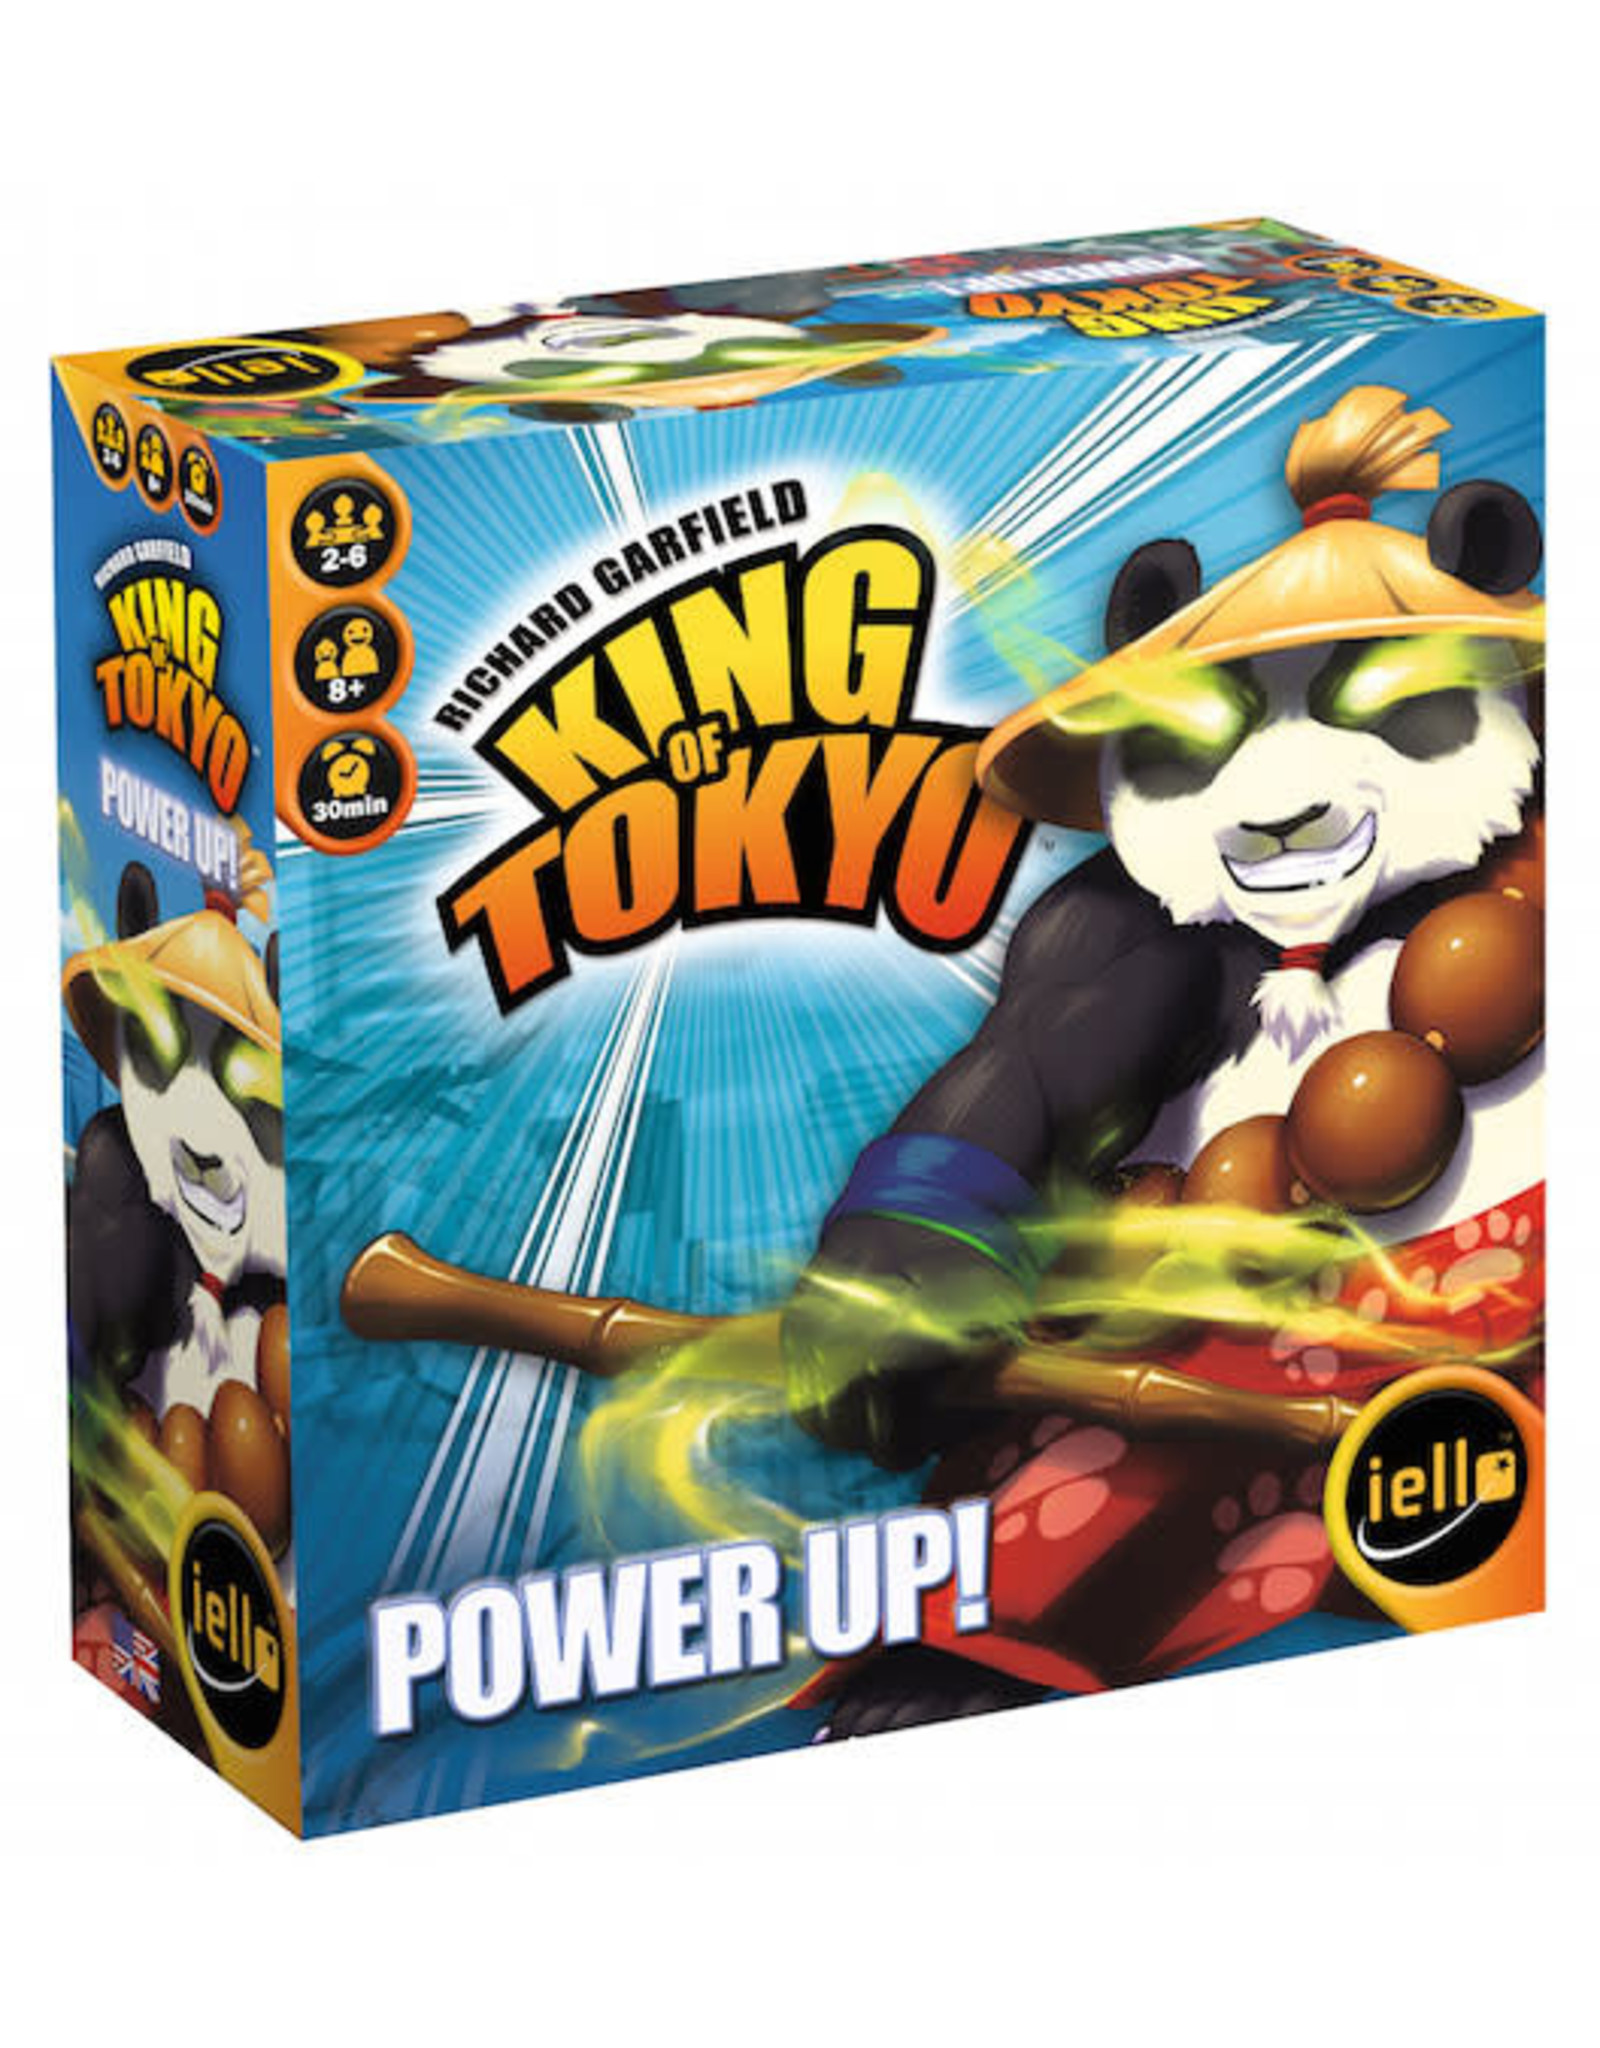 Iello King of Tokyo 2nd Edition Power Up